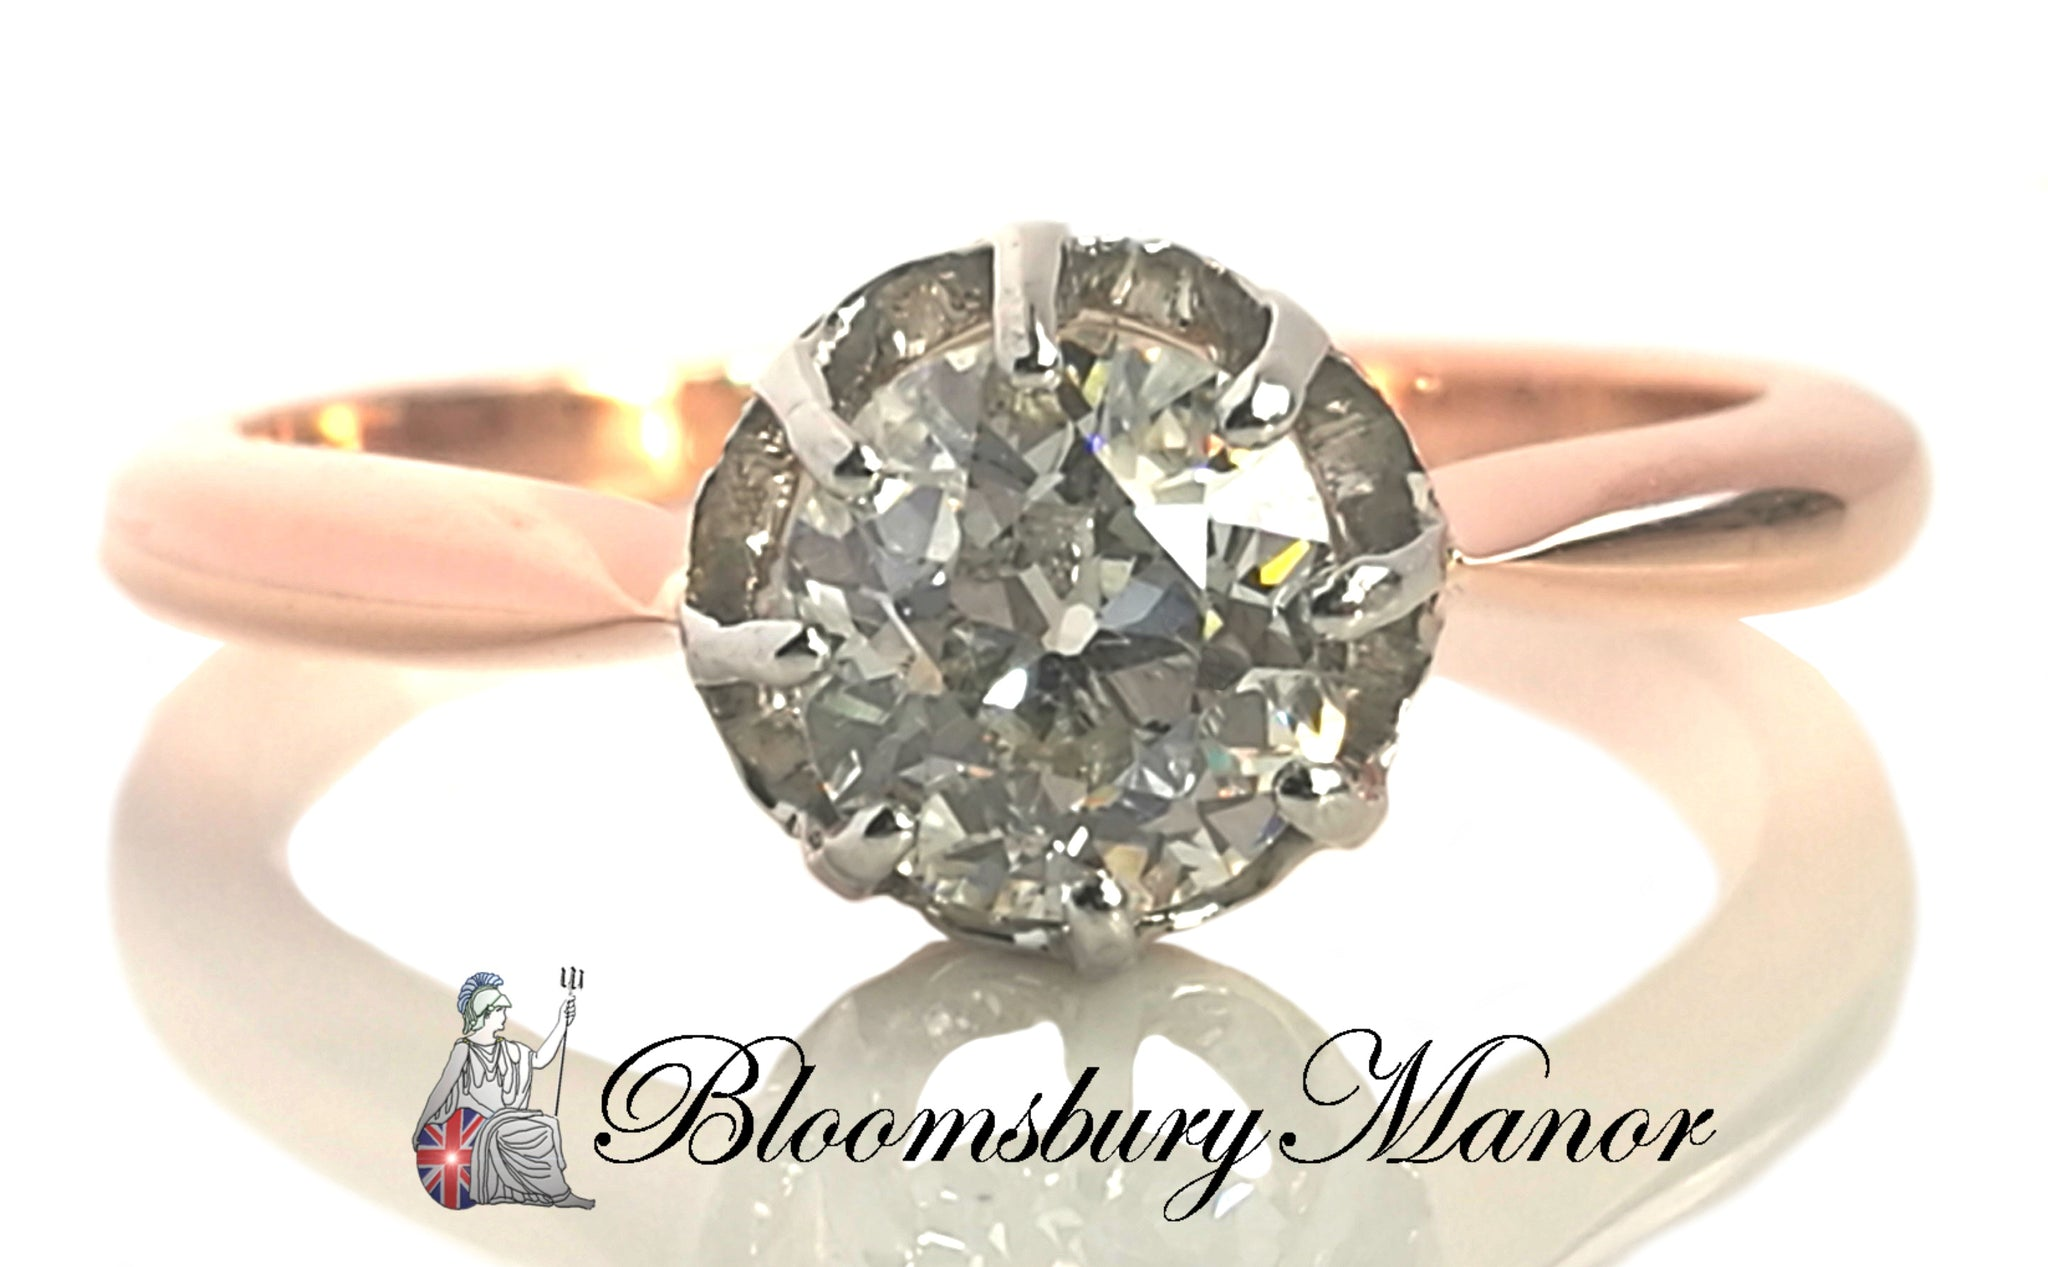 French Edwardian Antique Handmade Old Round Cut .75ct Diamond Engagement Ring